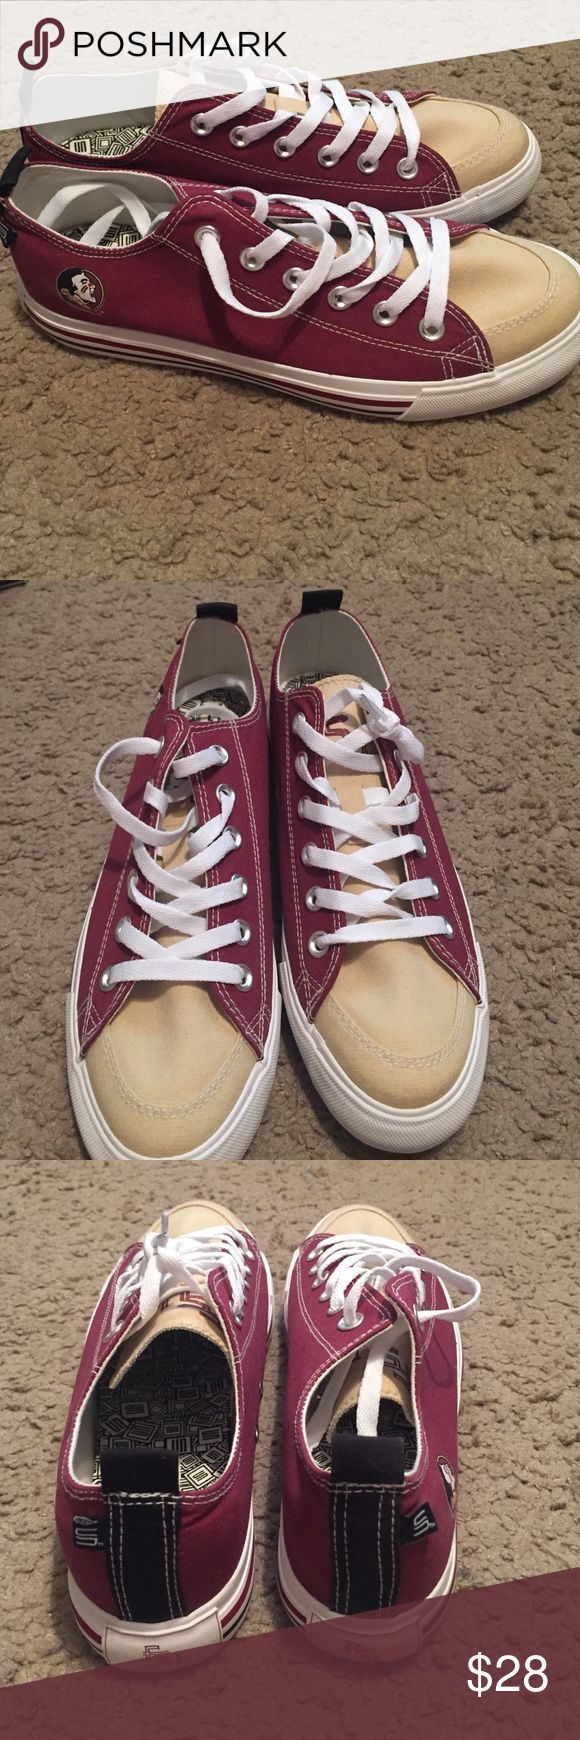 Florida State converse look-alikes Adorable sneakers made to look like converse. Bought for FSU football games but never worn. Comes with box! Shoes Sneakers